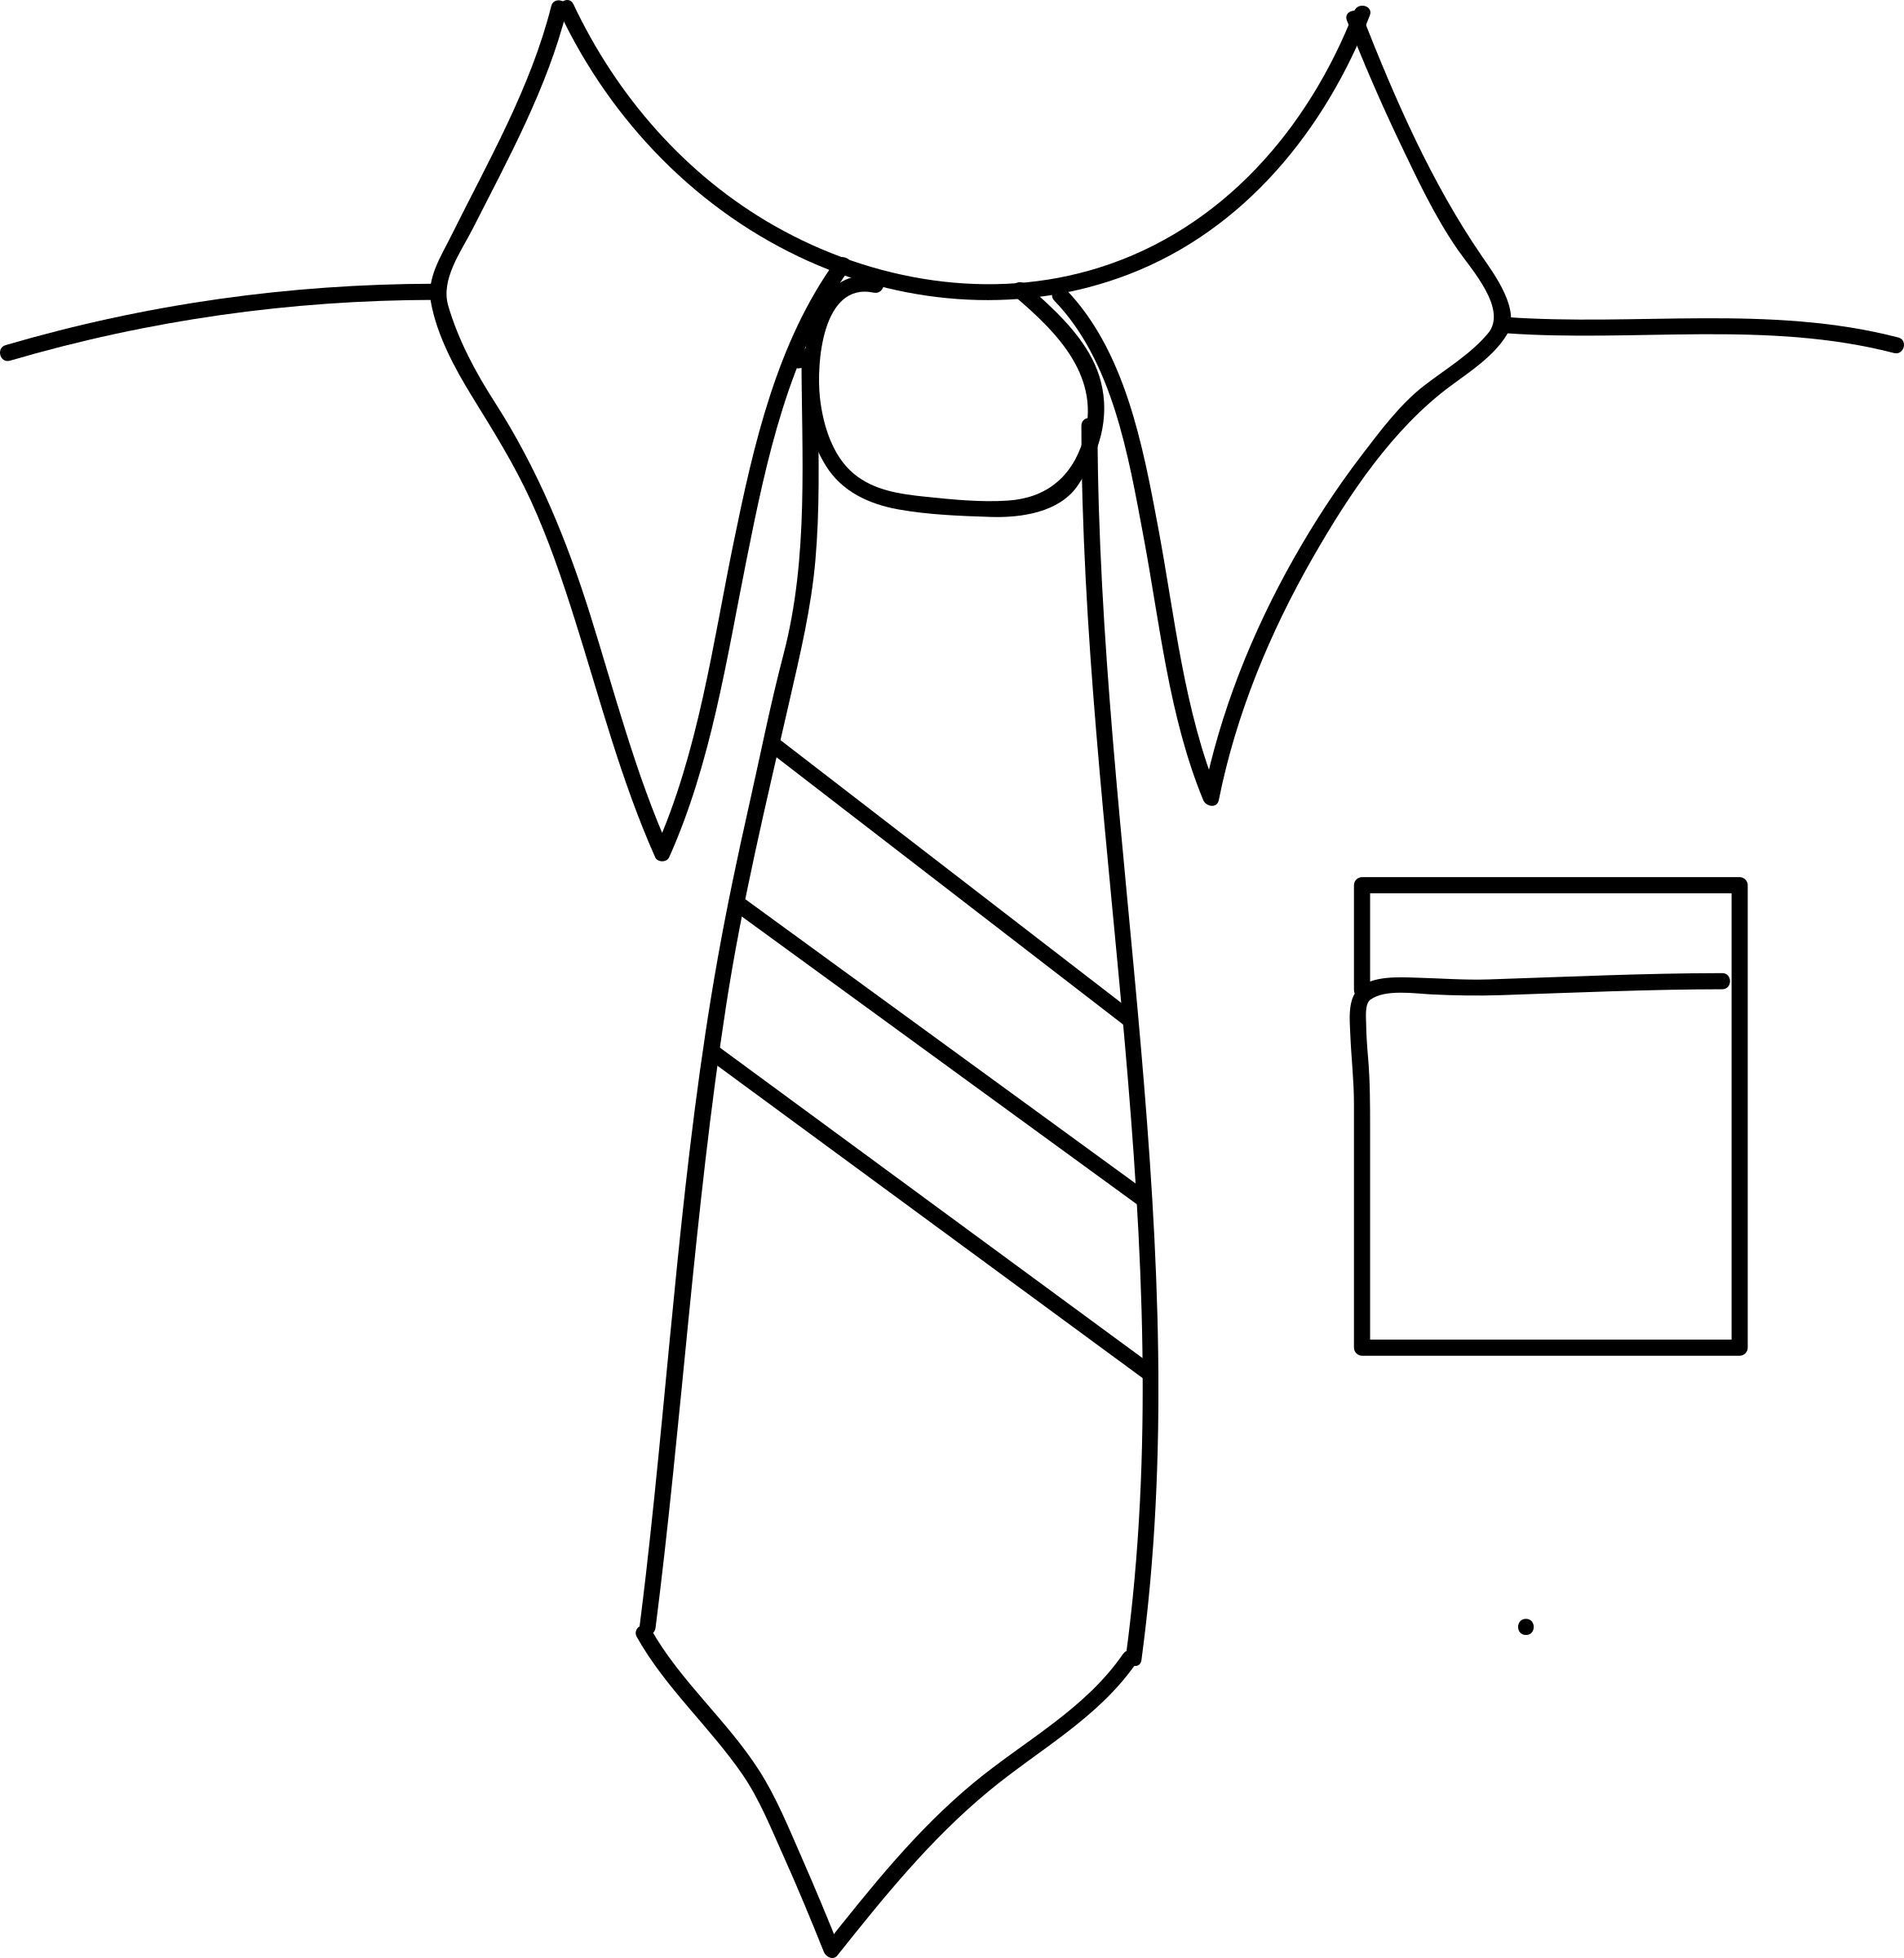 Tie Clipart Black And White